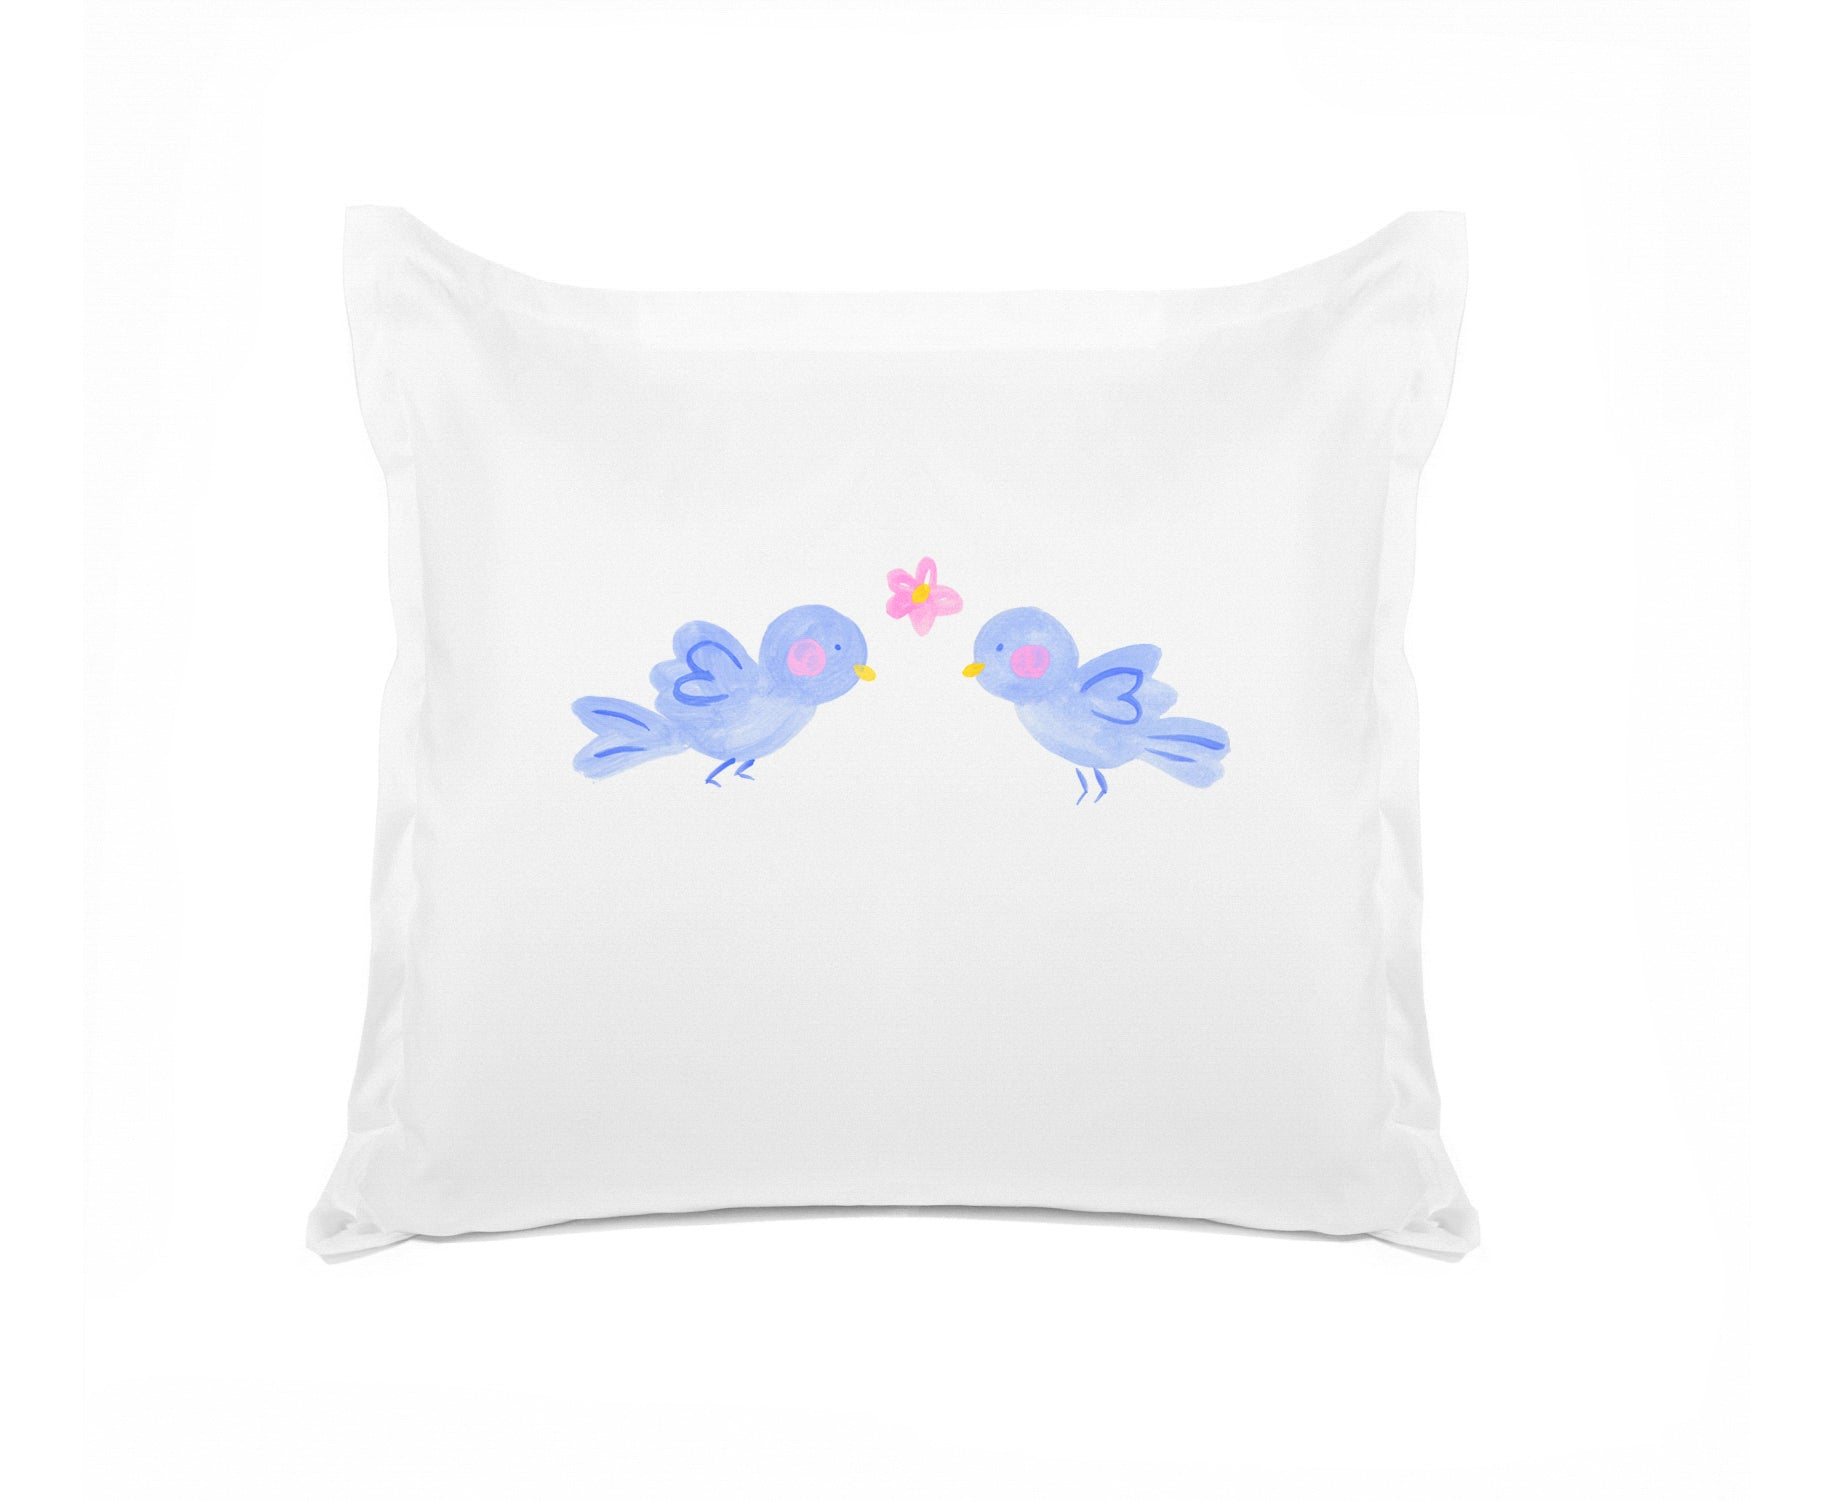 Bluebirds - Personalized Kids Pillowcase Collection